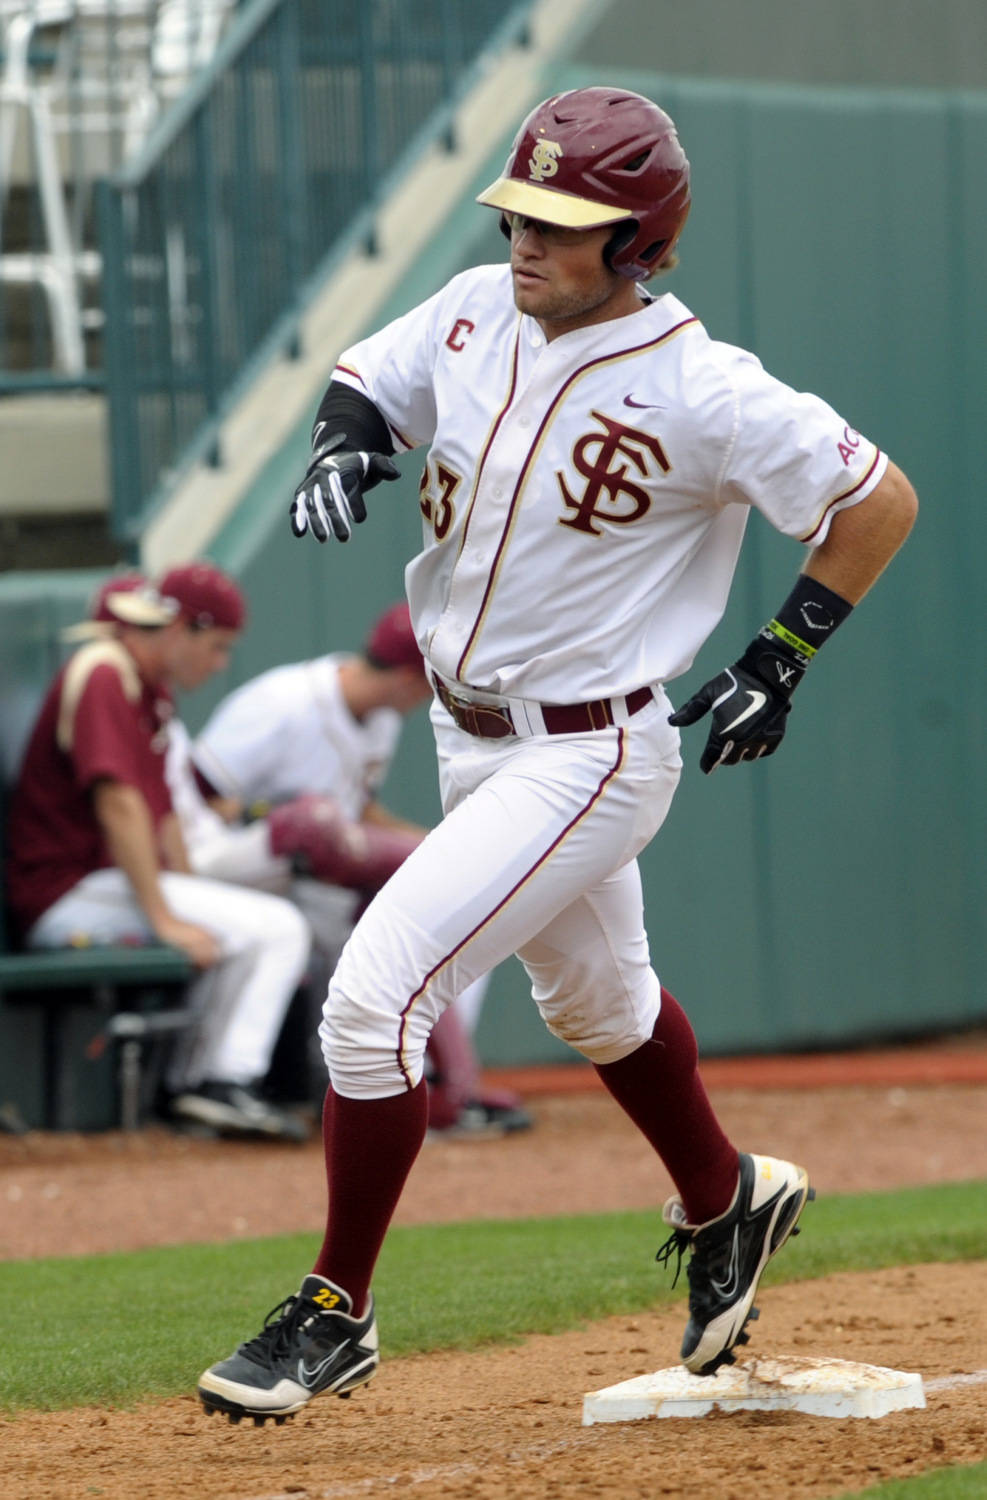 Florida State's James Ramsey (23) rounds third base after his home run against Georgia Tech during the ACC Baseball Championship May 23, 2012 in Greensboro, N.C. (Photo by Sara D. Davis/theACC.com)